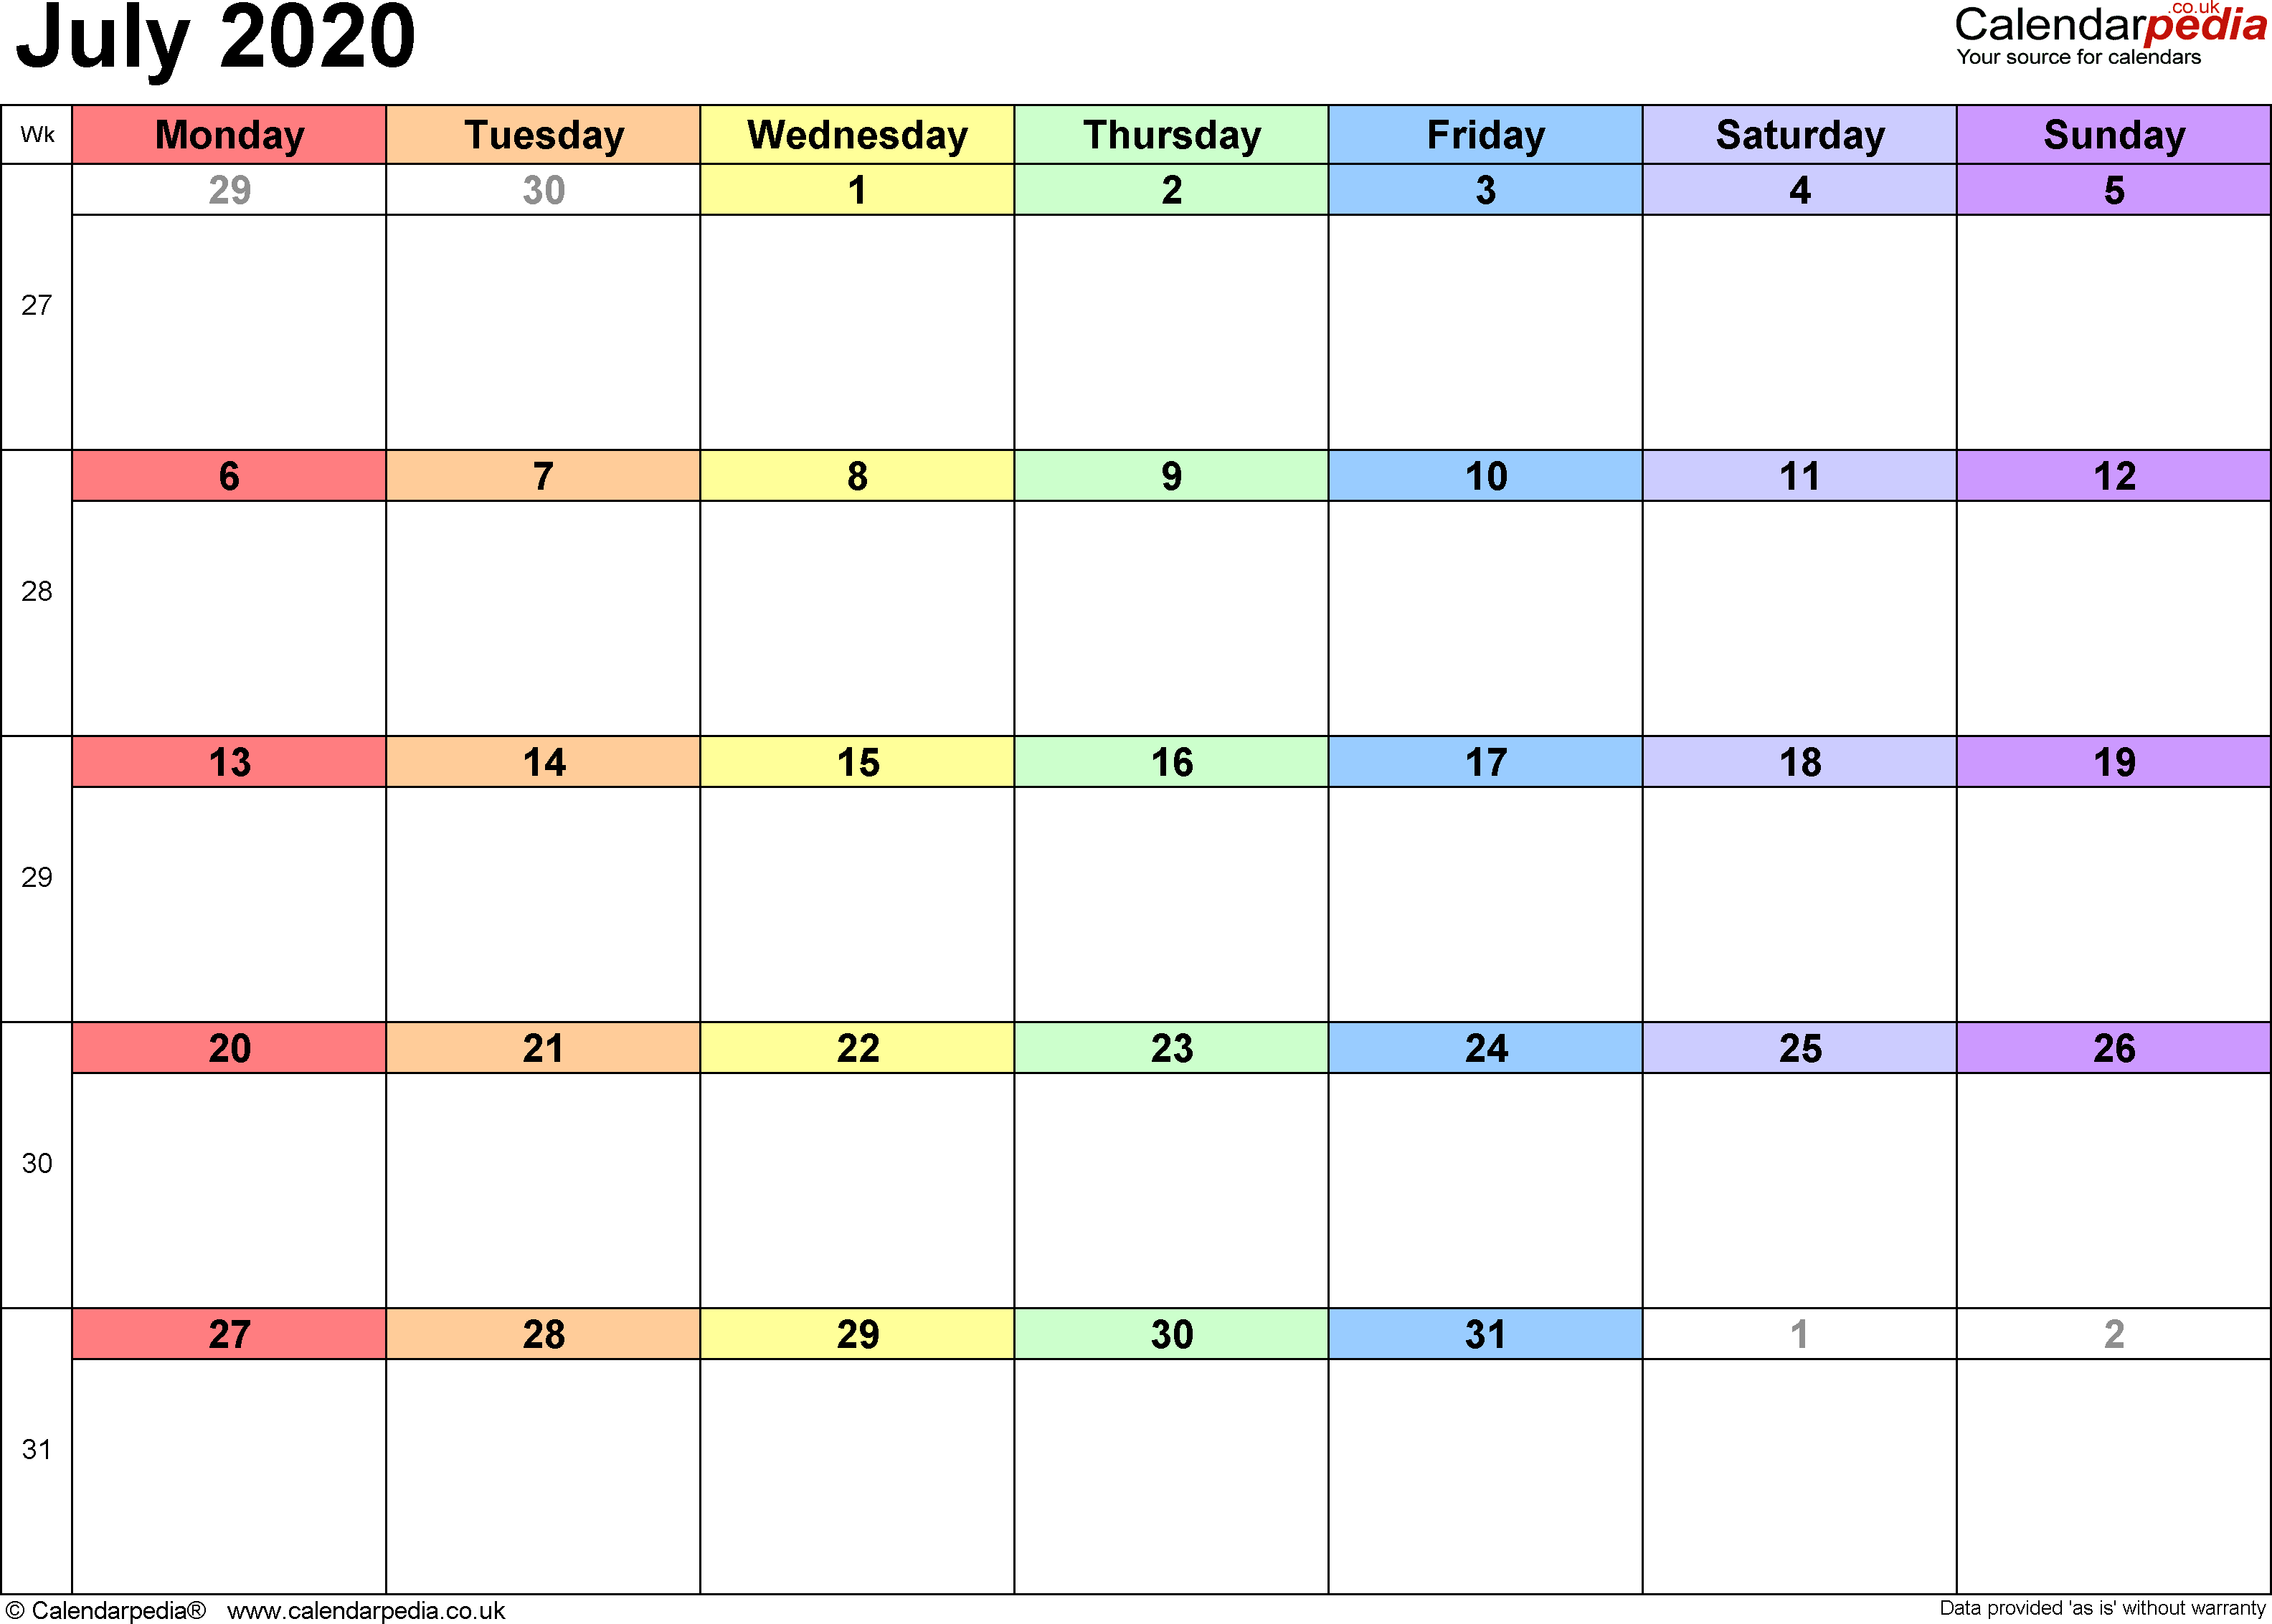 Calendar July 2020, landscape orientation, 1 page, with UK bank holidays and week numbers